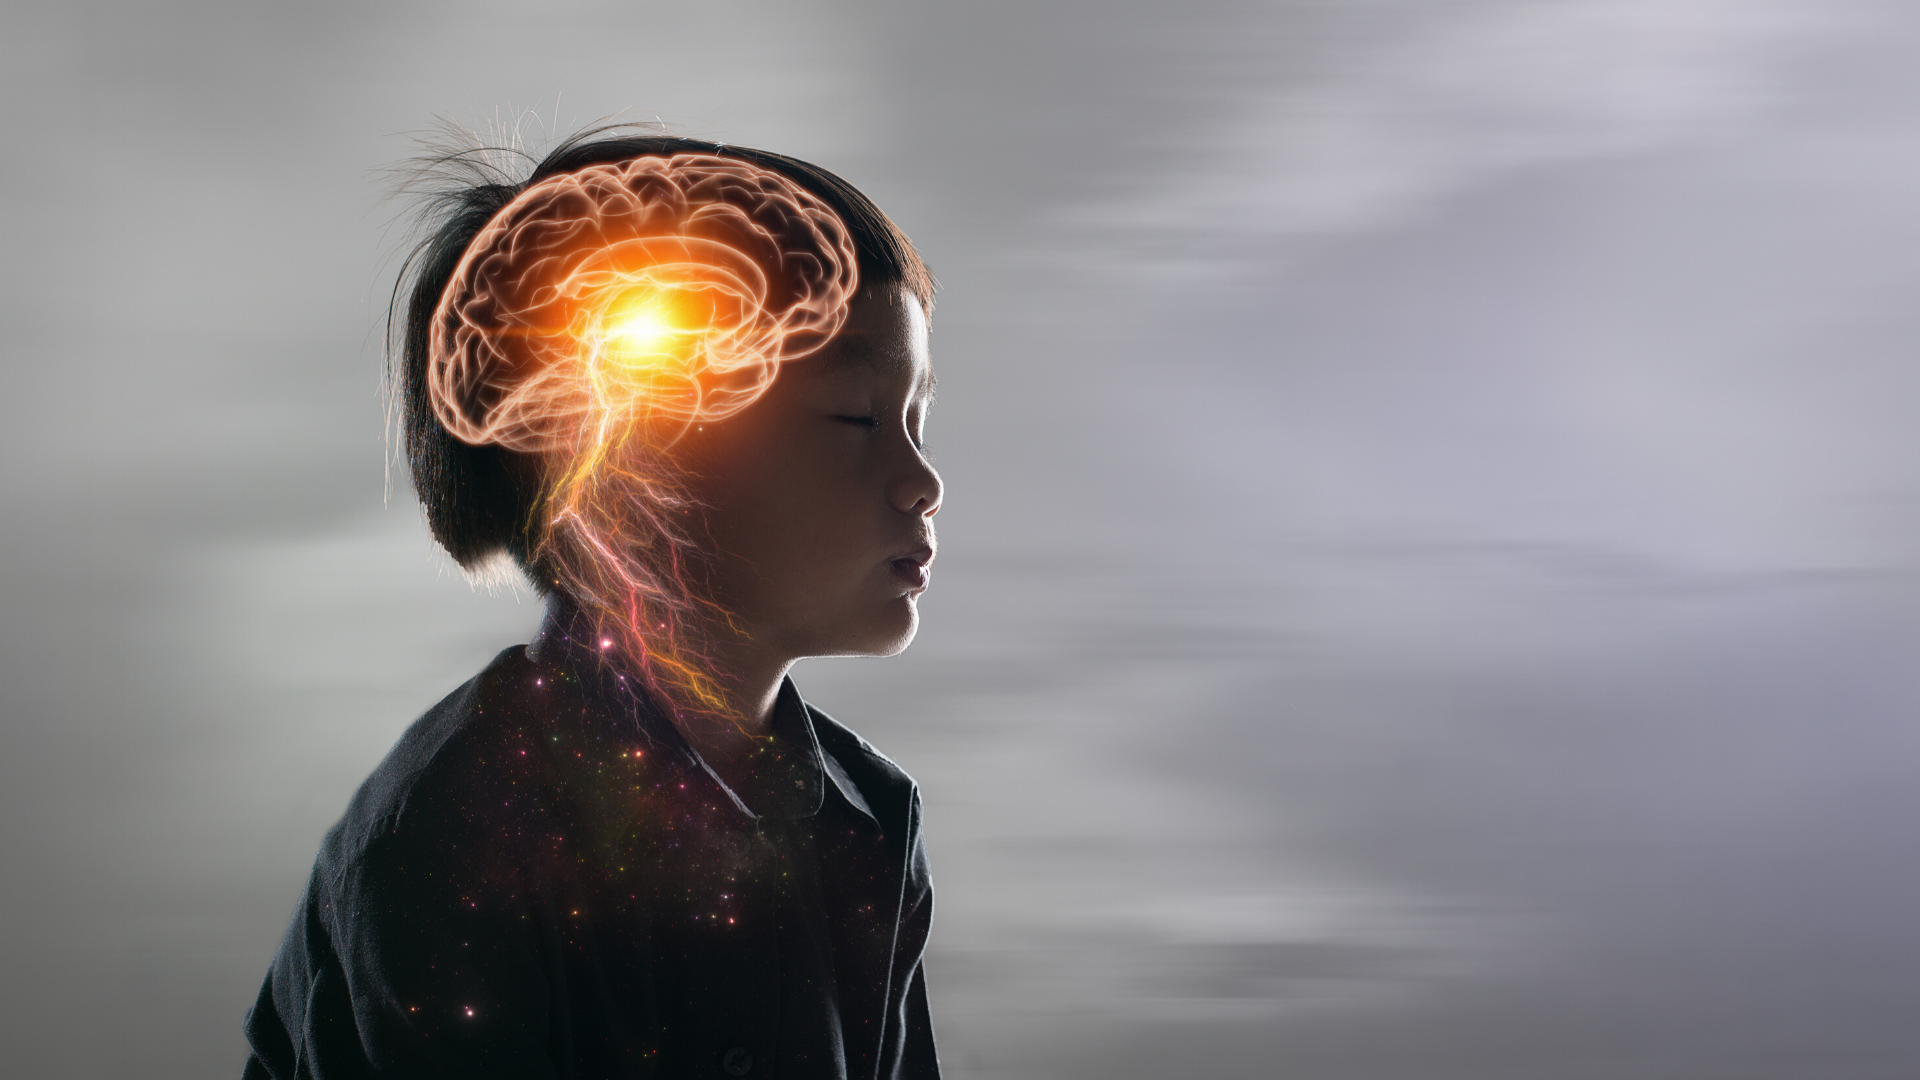 Small child seated with eyes closed - his brain and nervous system are glowing.